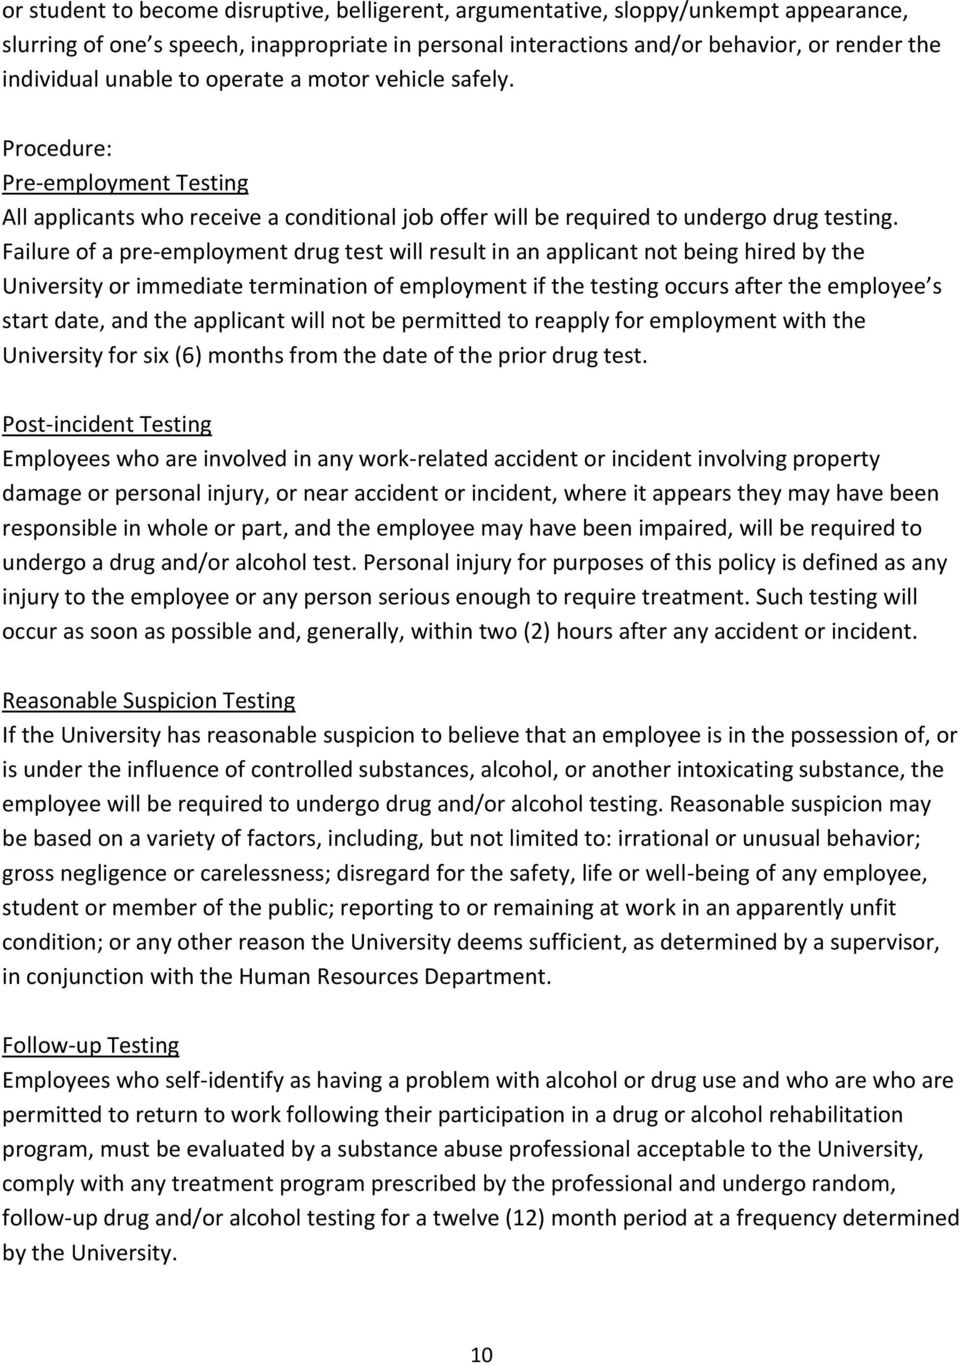 Failure of a pre-employment drug test will result in an applicant not being hired by the University or immediate termination of employment if the testing occurs after the employee s start date, and